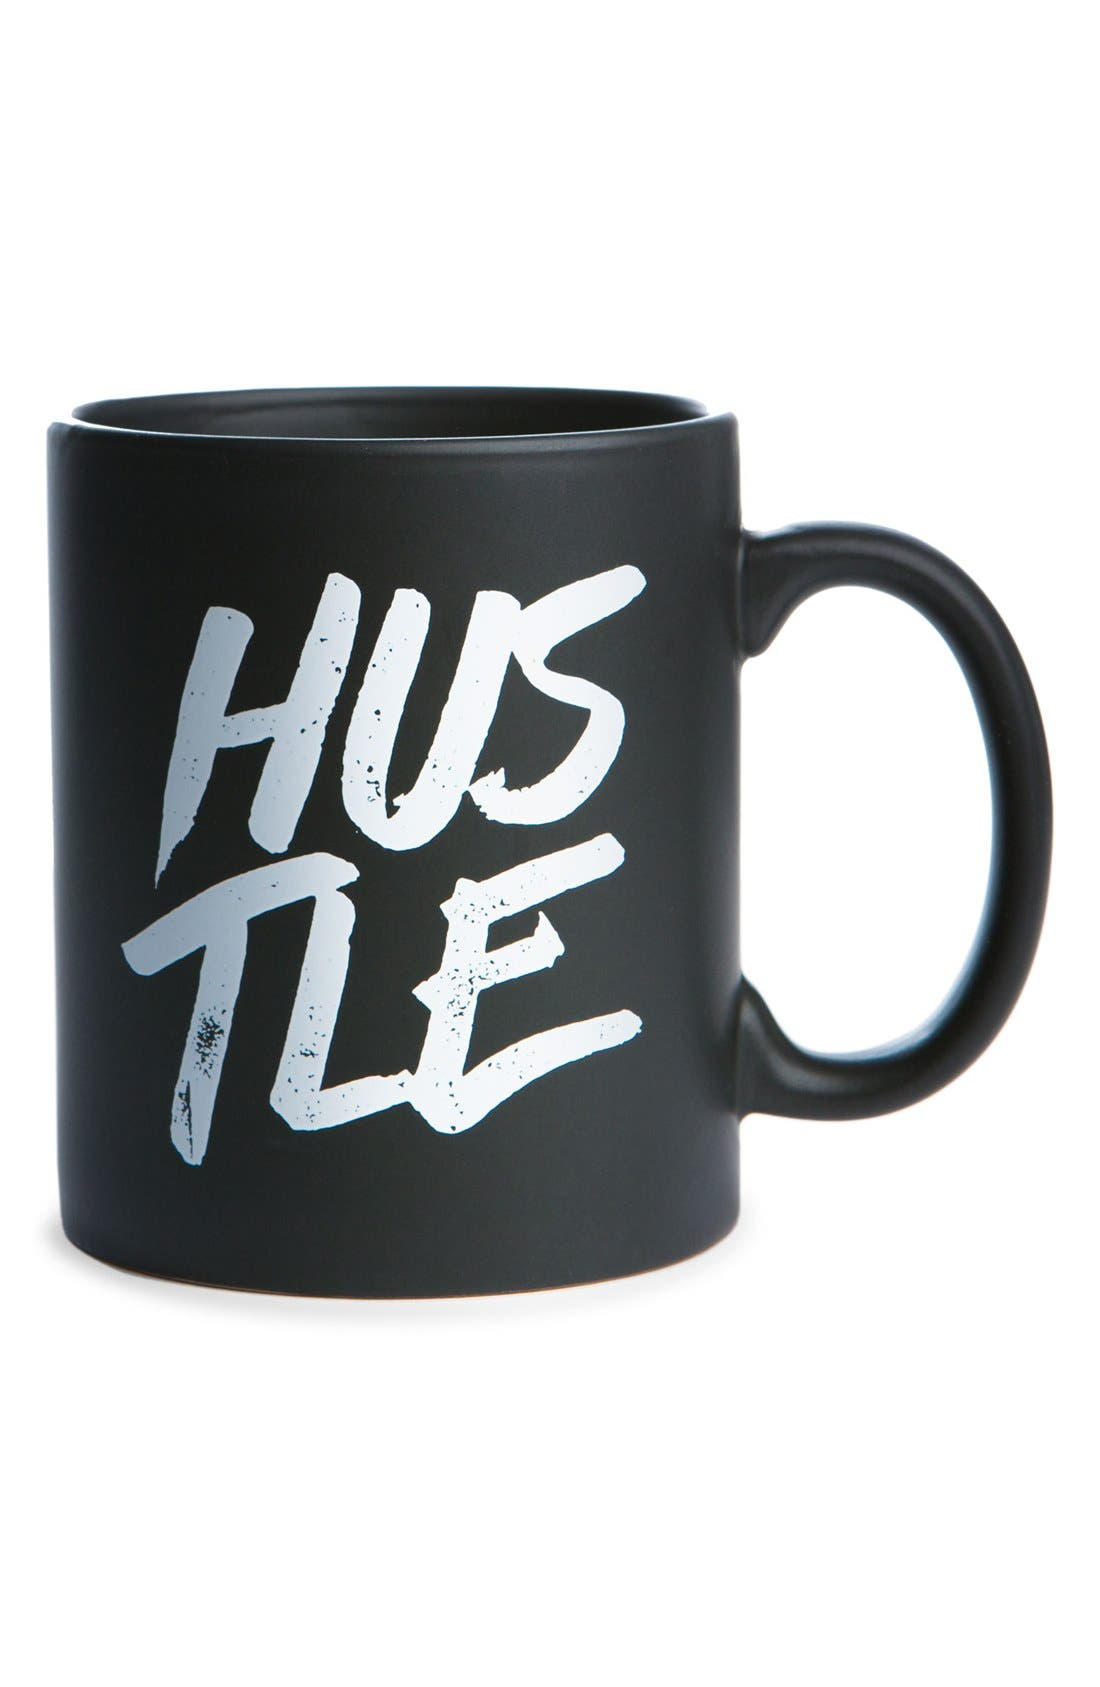 'Hustle' Mug,                             Main thumbnail 1, color,                             001